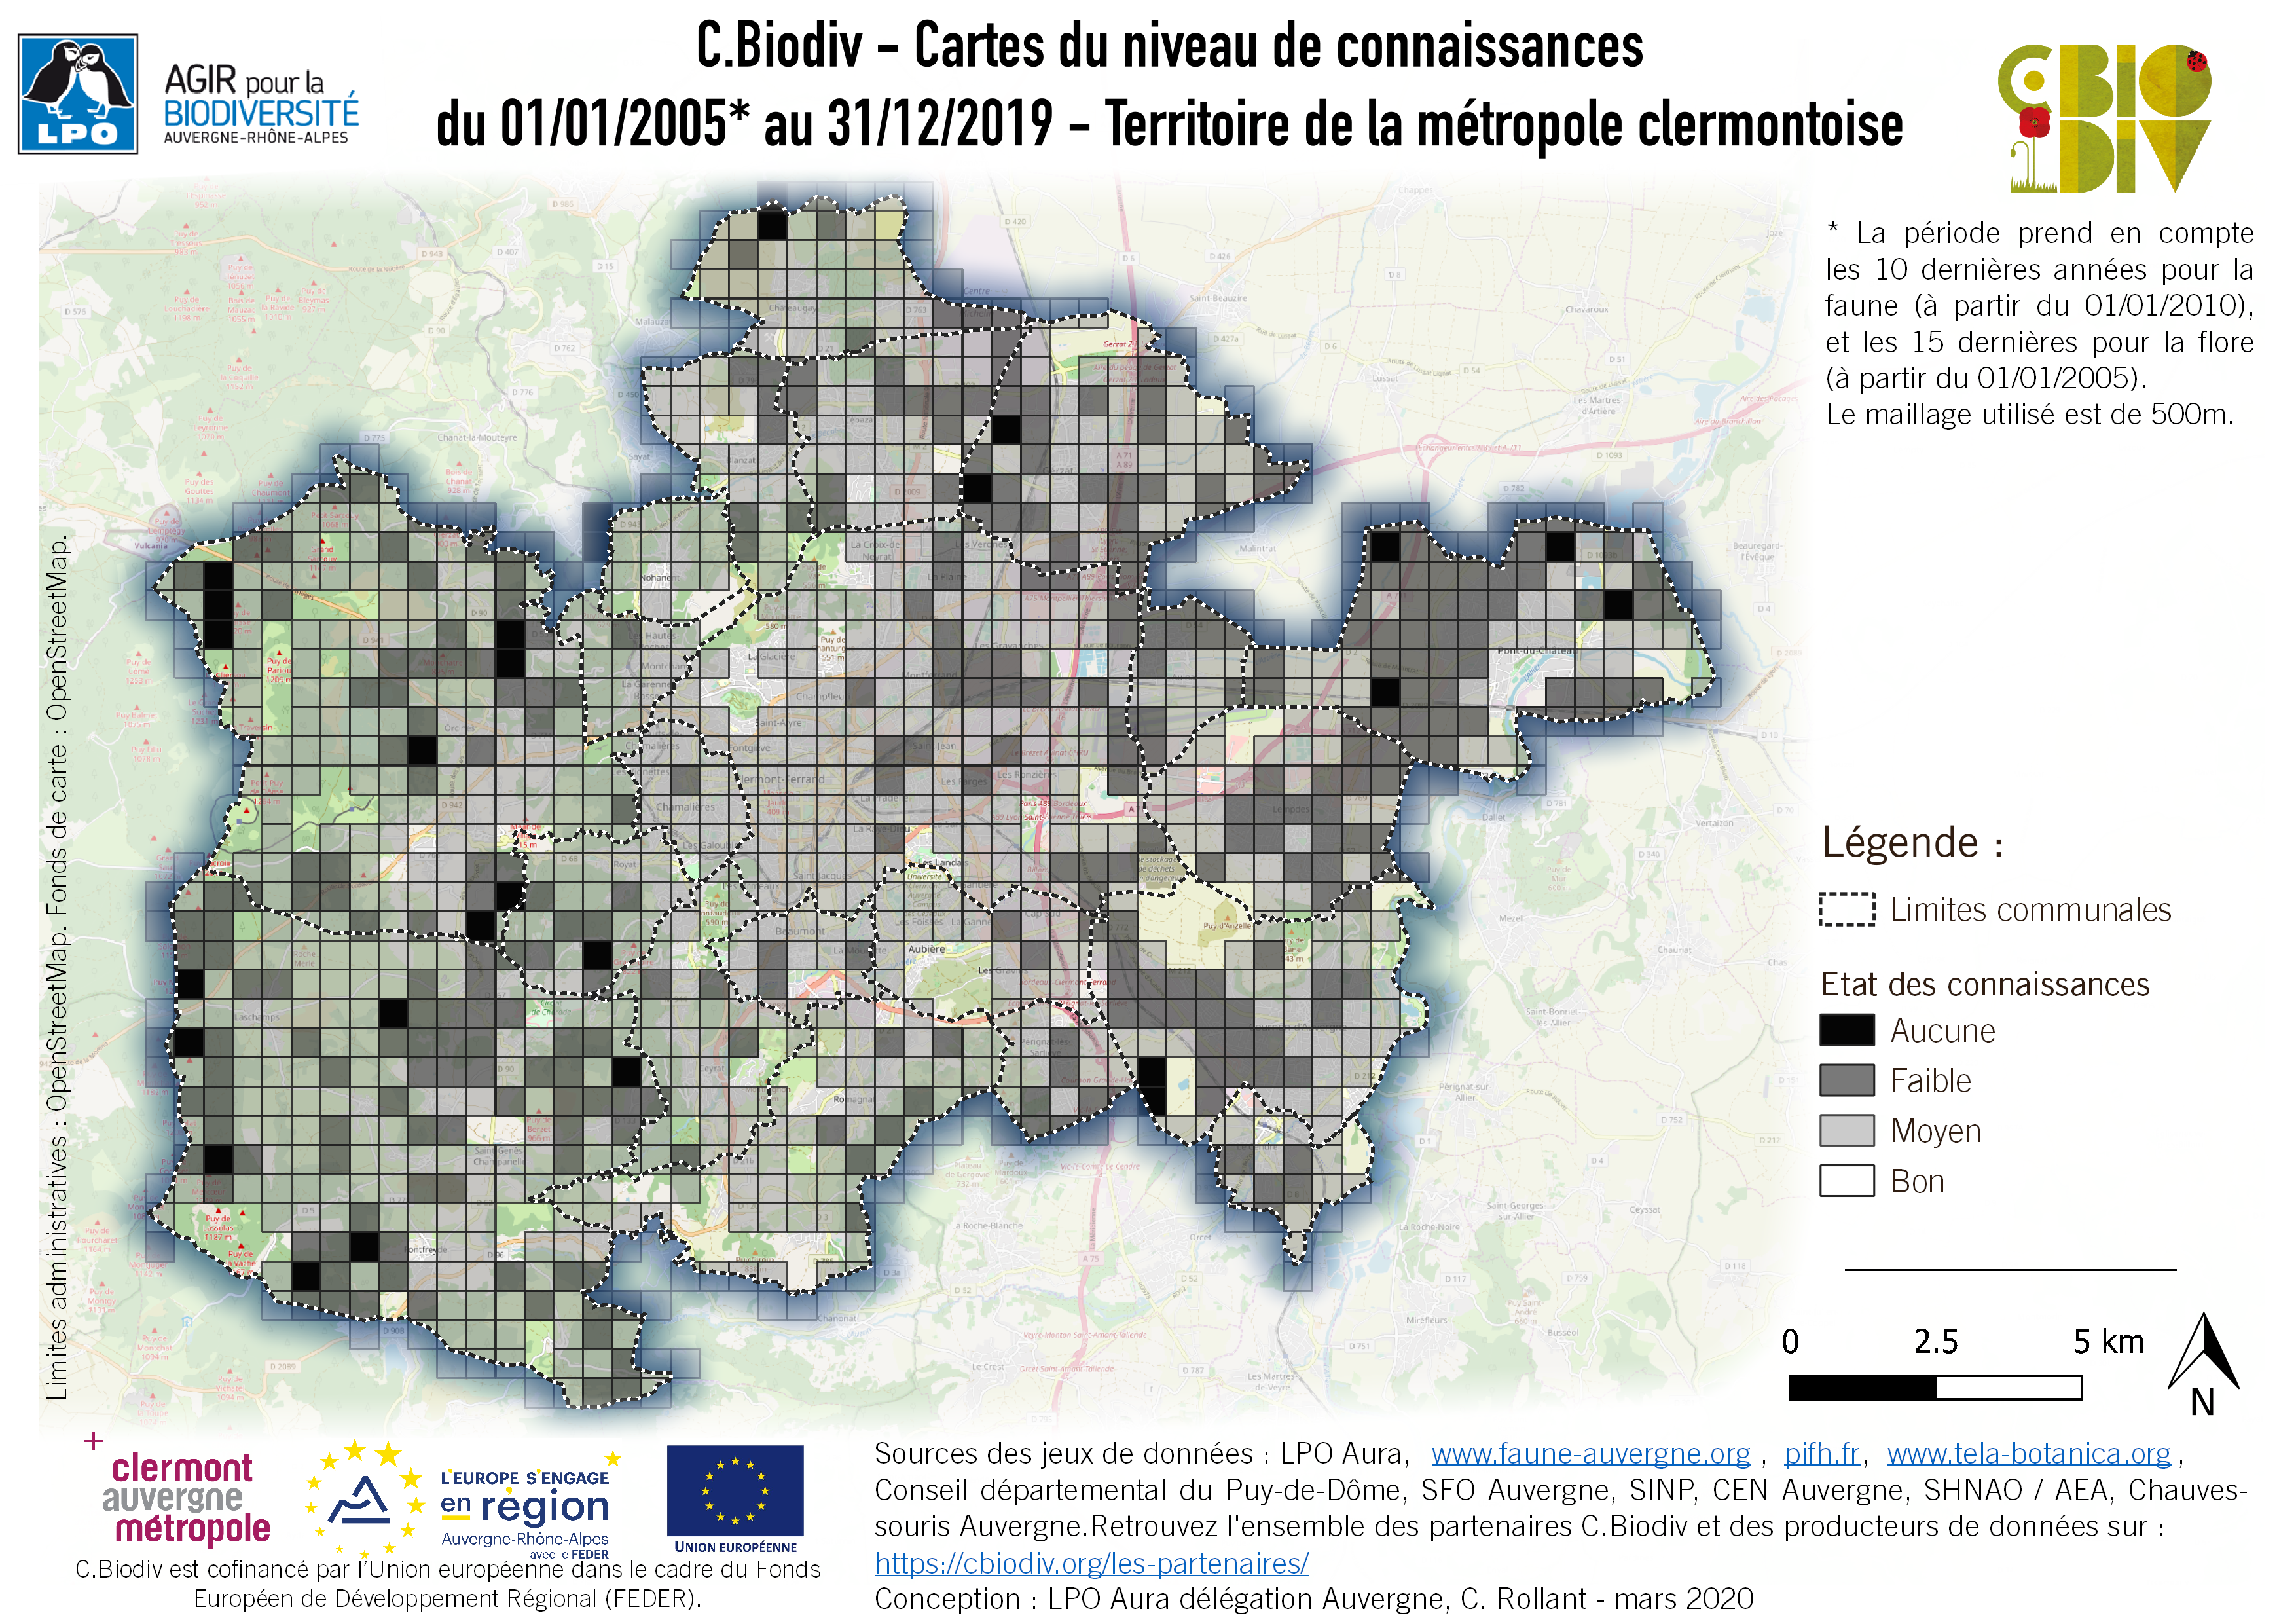 http://files.biolovision.net/www.faune-auvergne.org/userfiles/CBIODIVindice032020.png